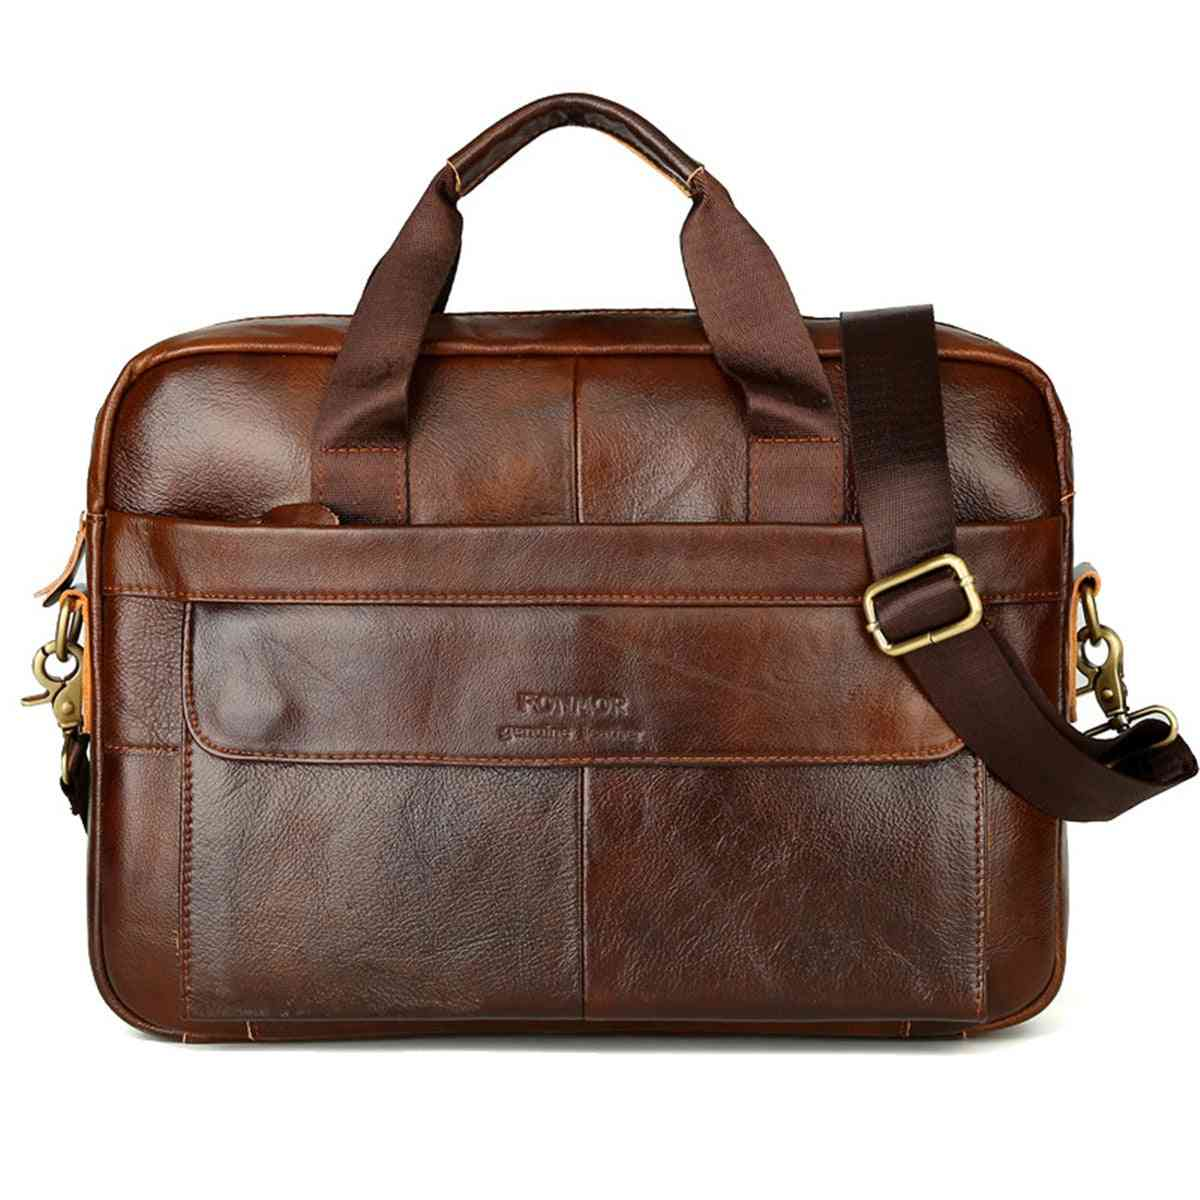 Men's Briefcase, Cowhide Leather, Crossbody Bags